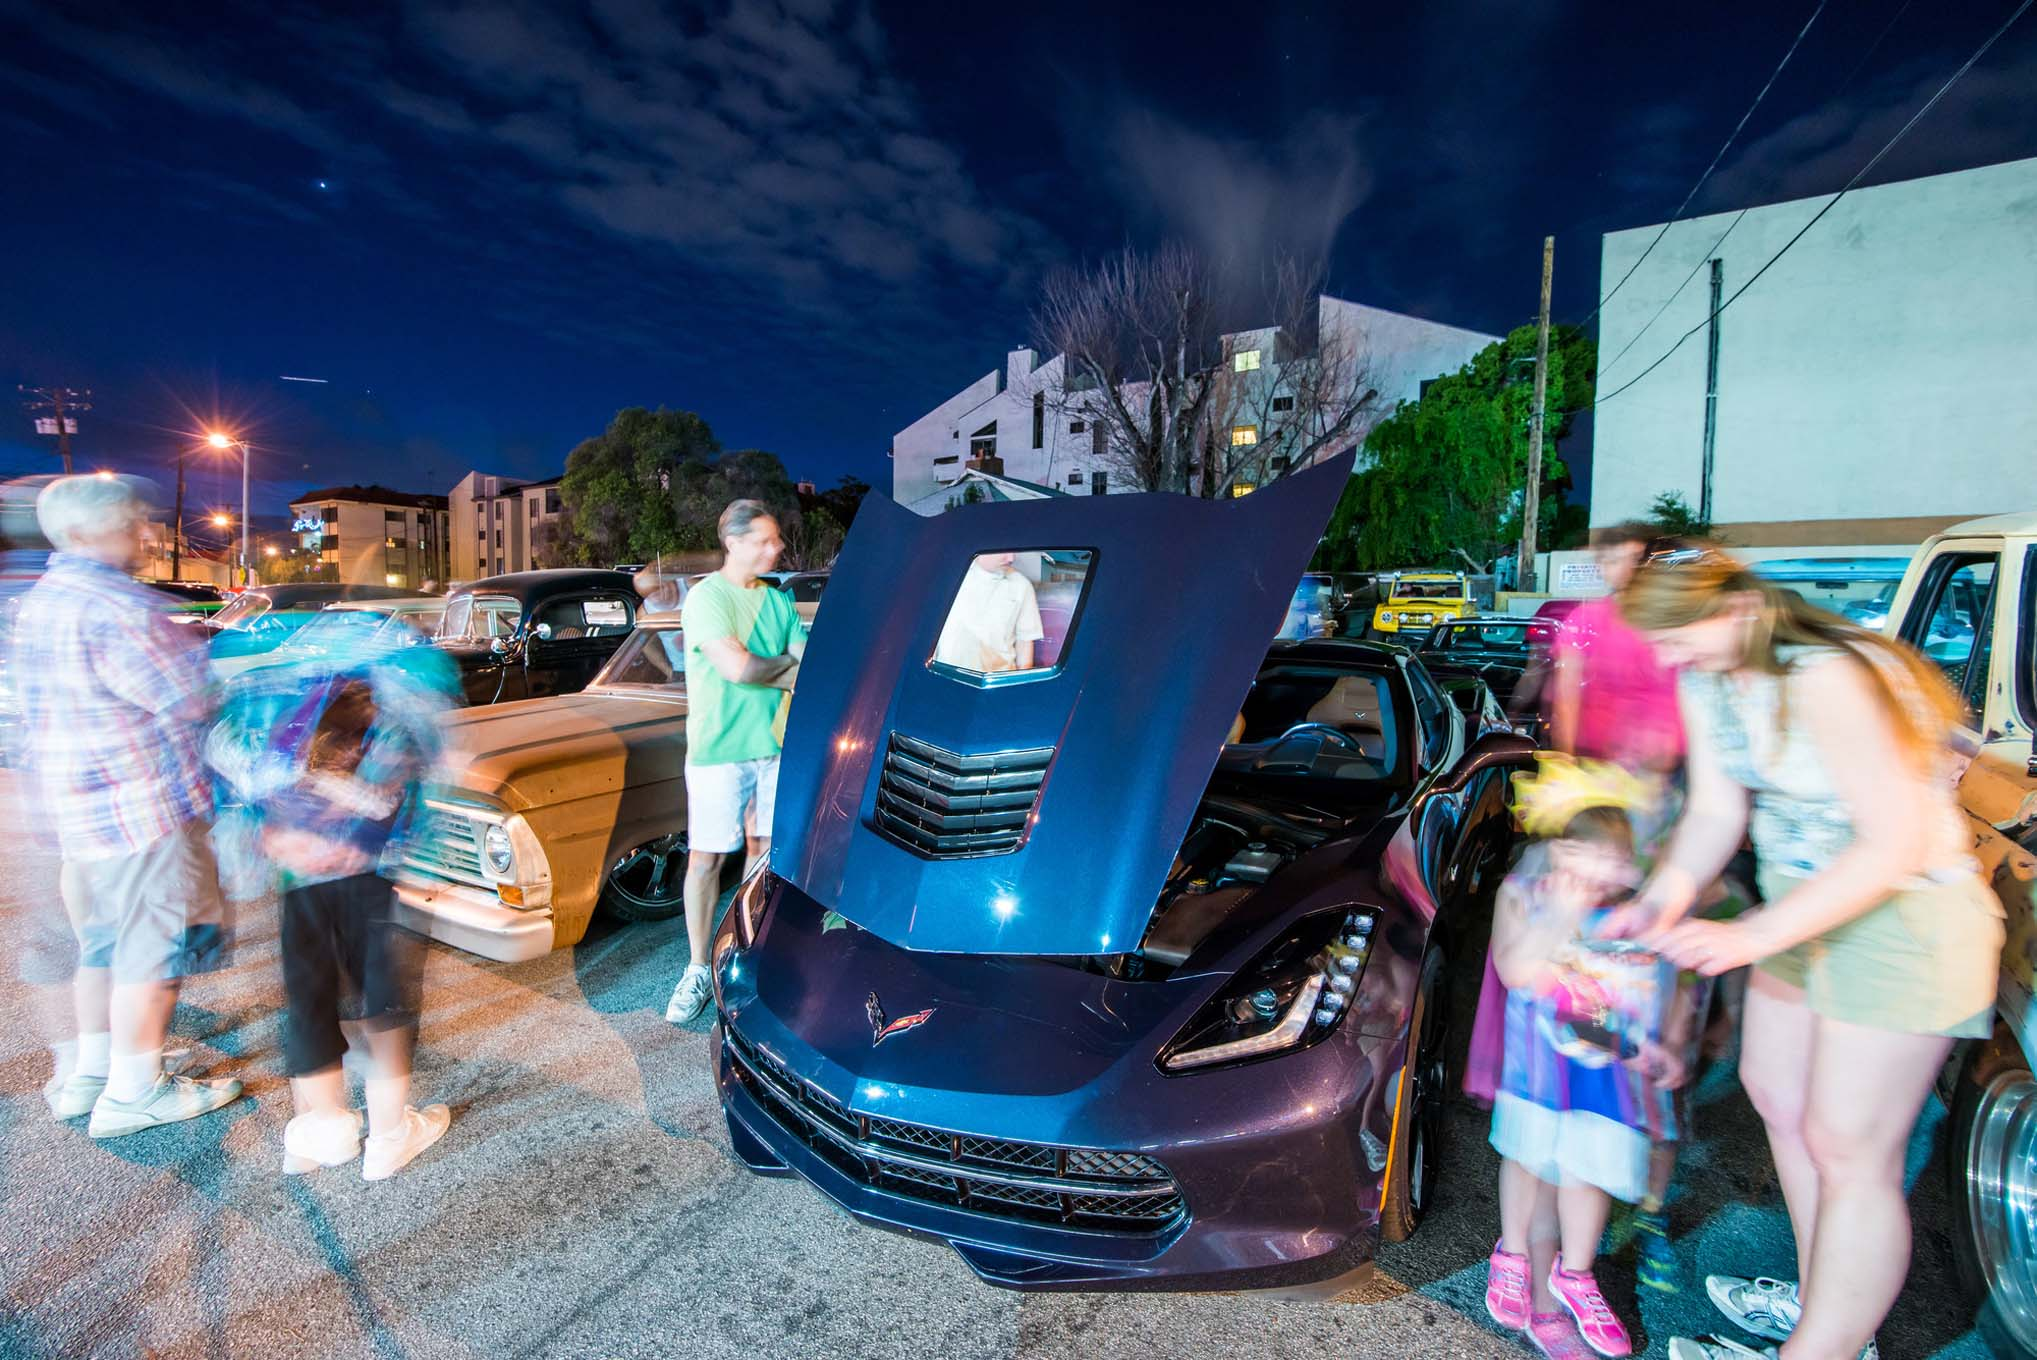 Callaway has been offering upgrades to Corvettes since 1987, and when we stopped at our local Bob's Big Boy Friday night cruise, we were surprised how many people recognized the car and had happy stories of owning previous Callaway-edition Corvettes.